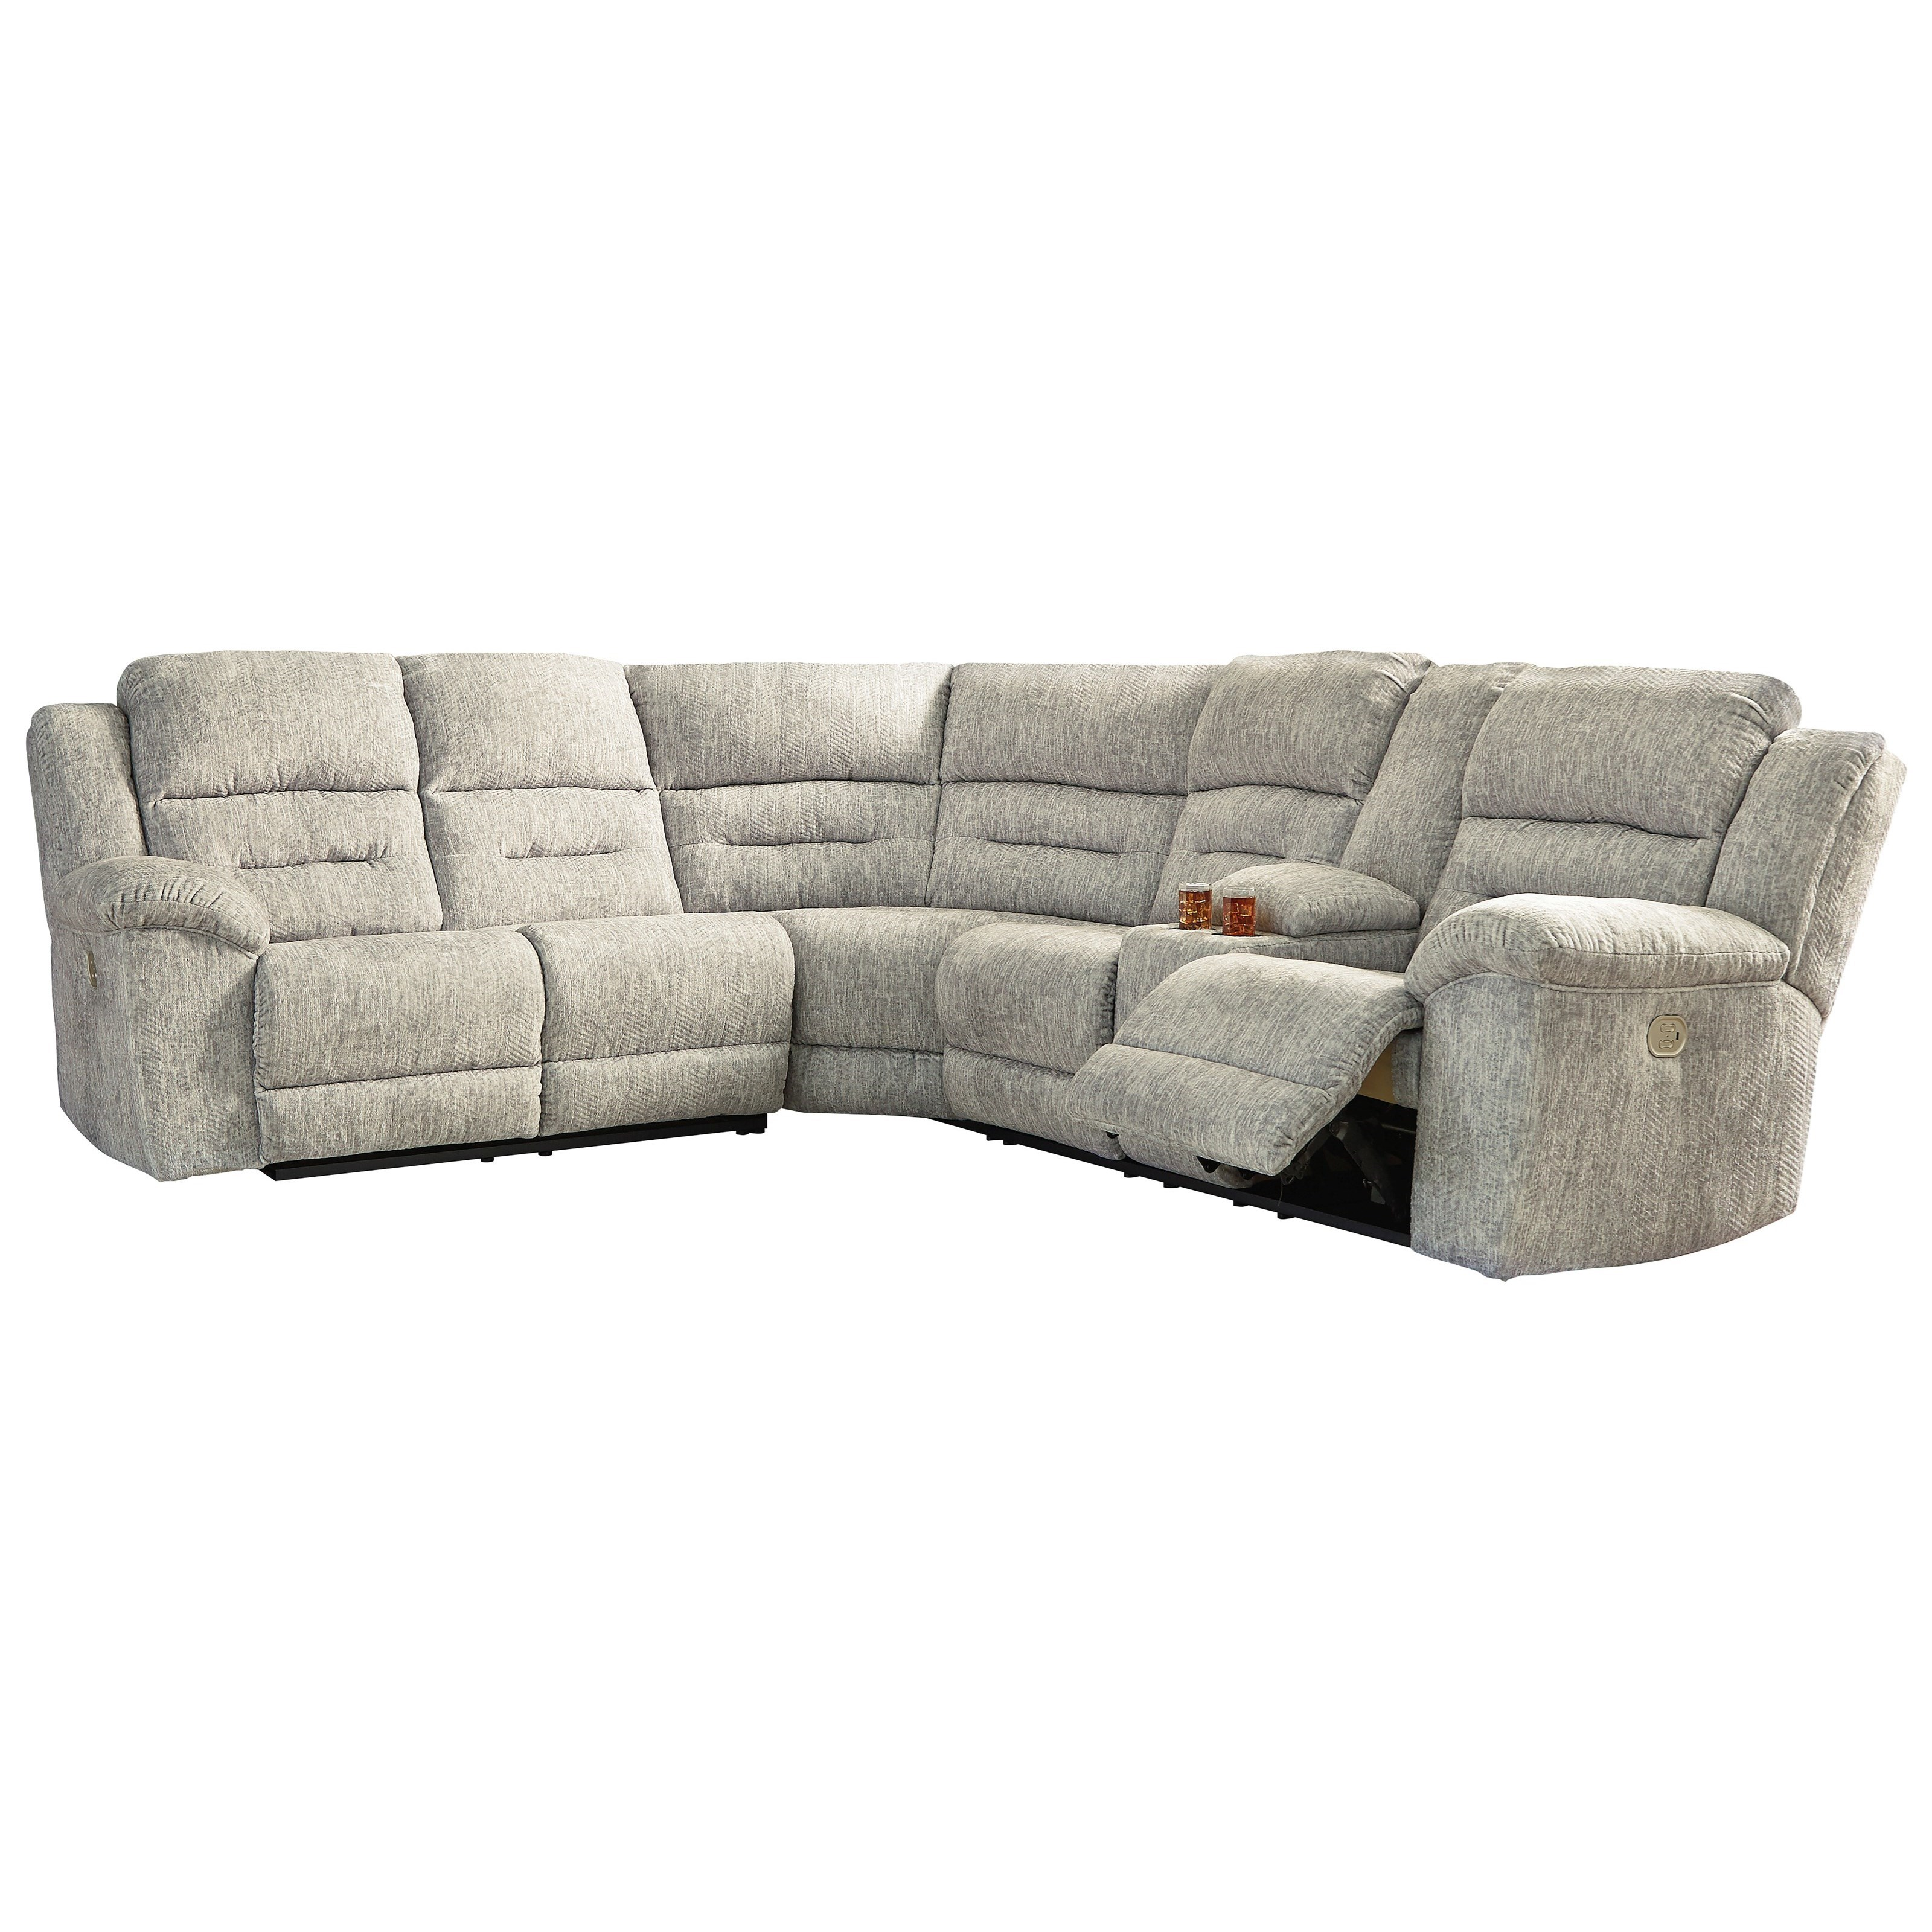 Family Den Power Reclining Sectional by Signature Design by Ashley at Northeast Factory Direct